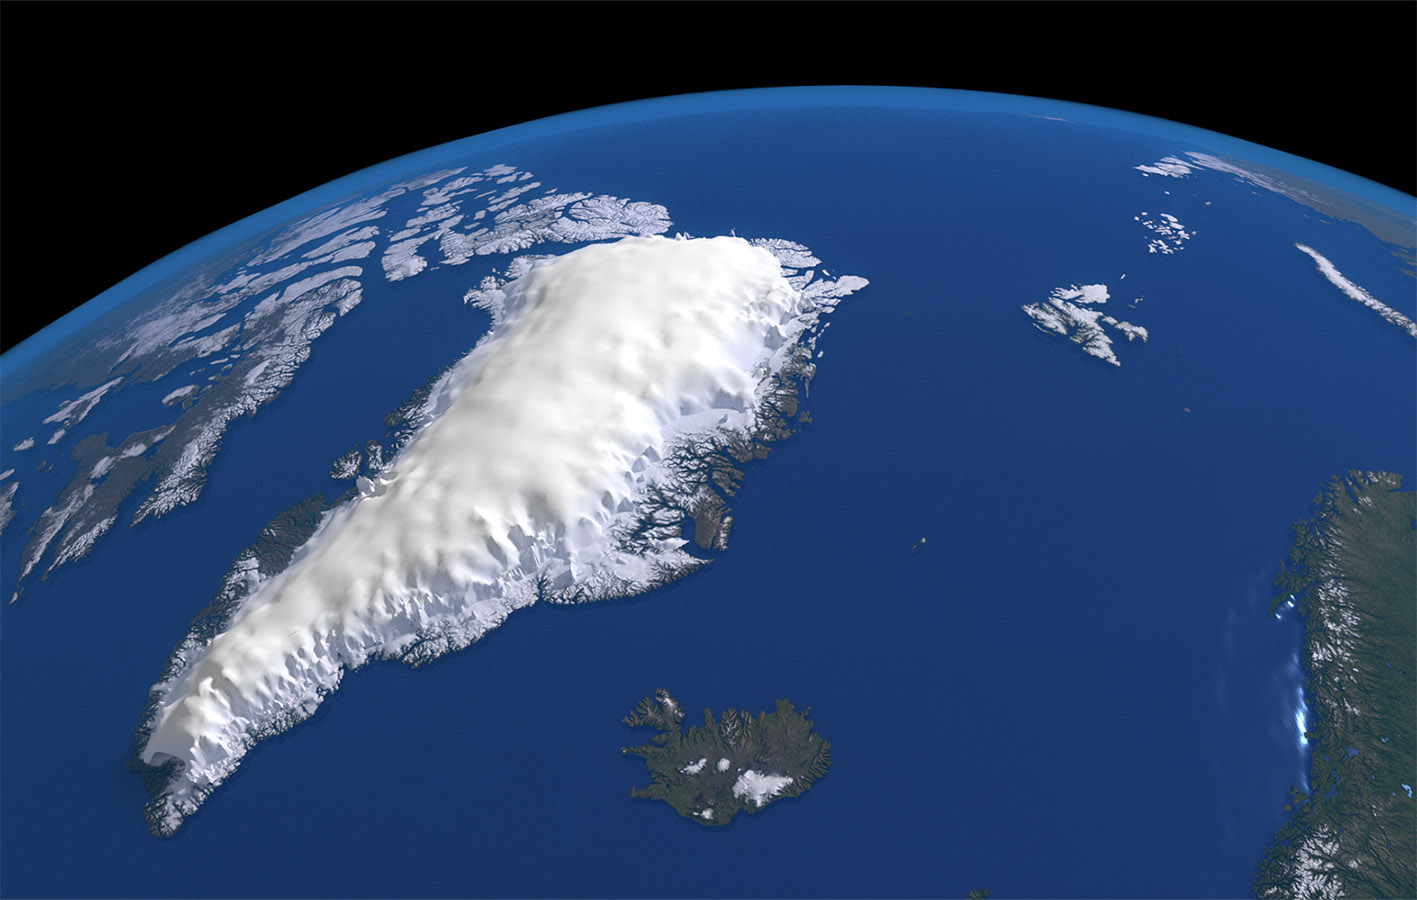 greenland from space1